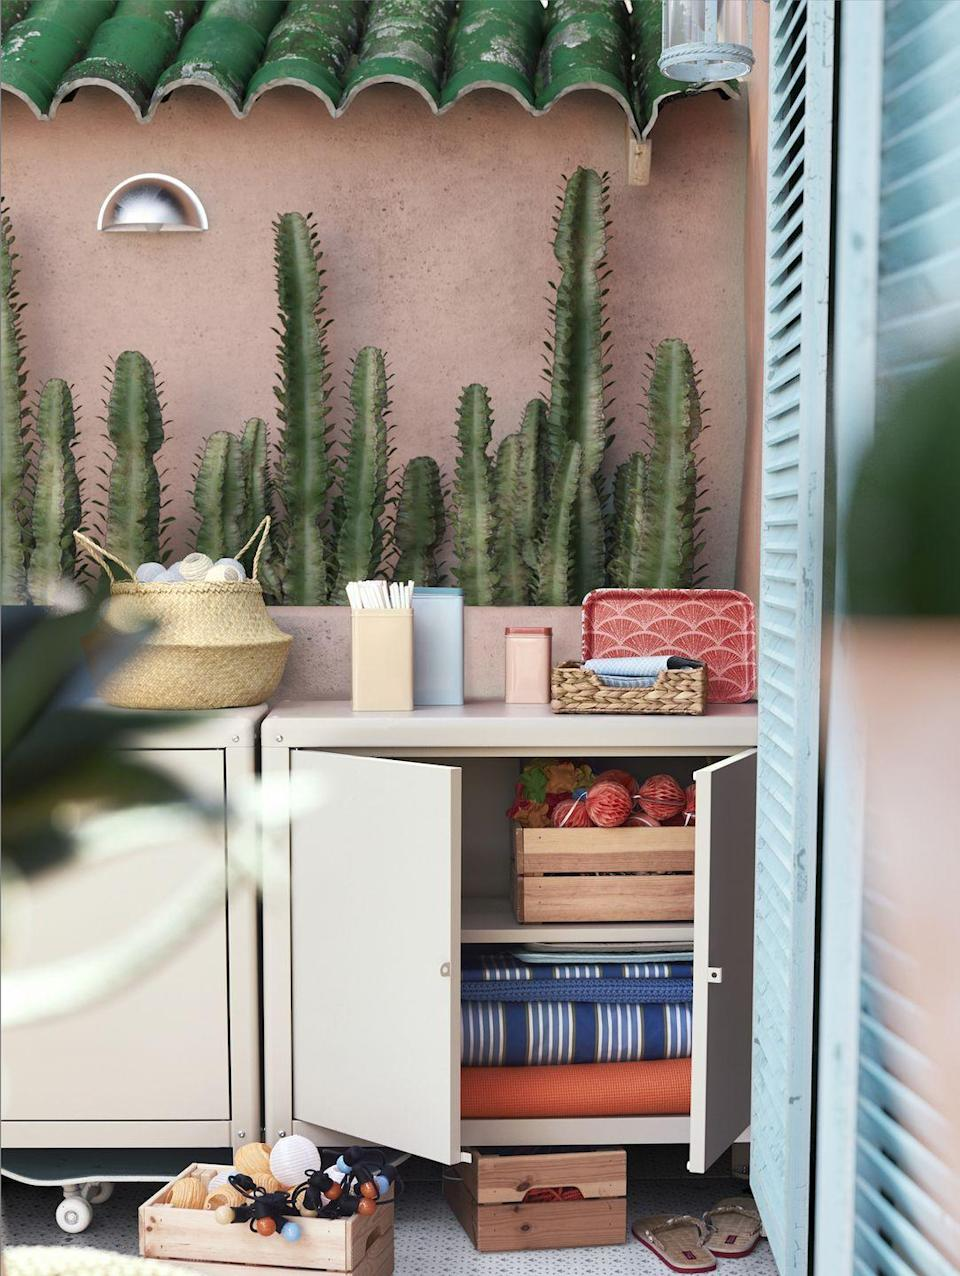 """<p>Clear away gardening essentials, tools, and picnic rugs not in use with IKEA's clever storage unit. As part of the Swedish retailer's Outdoor Escapism range, it has been designed to 'cater for our many needs' and provide an 'alternative workspace'. </p><p><strong>READ MORE</strong>: <a href=""""https://www.housebeautiful.com/uk/garden/a35189275/positive-garden-changes/"""" rel=""""nofollow noopener"""" target=""""_blank"""" data-ylk=""""slk:5 positive changes you can make to your garden in 2021"""" class=""""link rapid-noclick-resp"""">5 positive changes you can make to your garden in 2021</a></p>"""